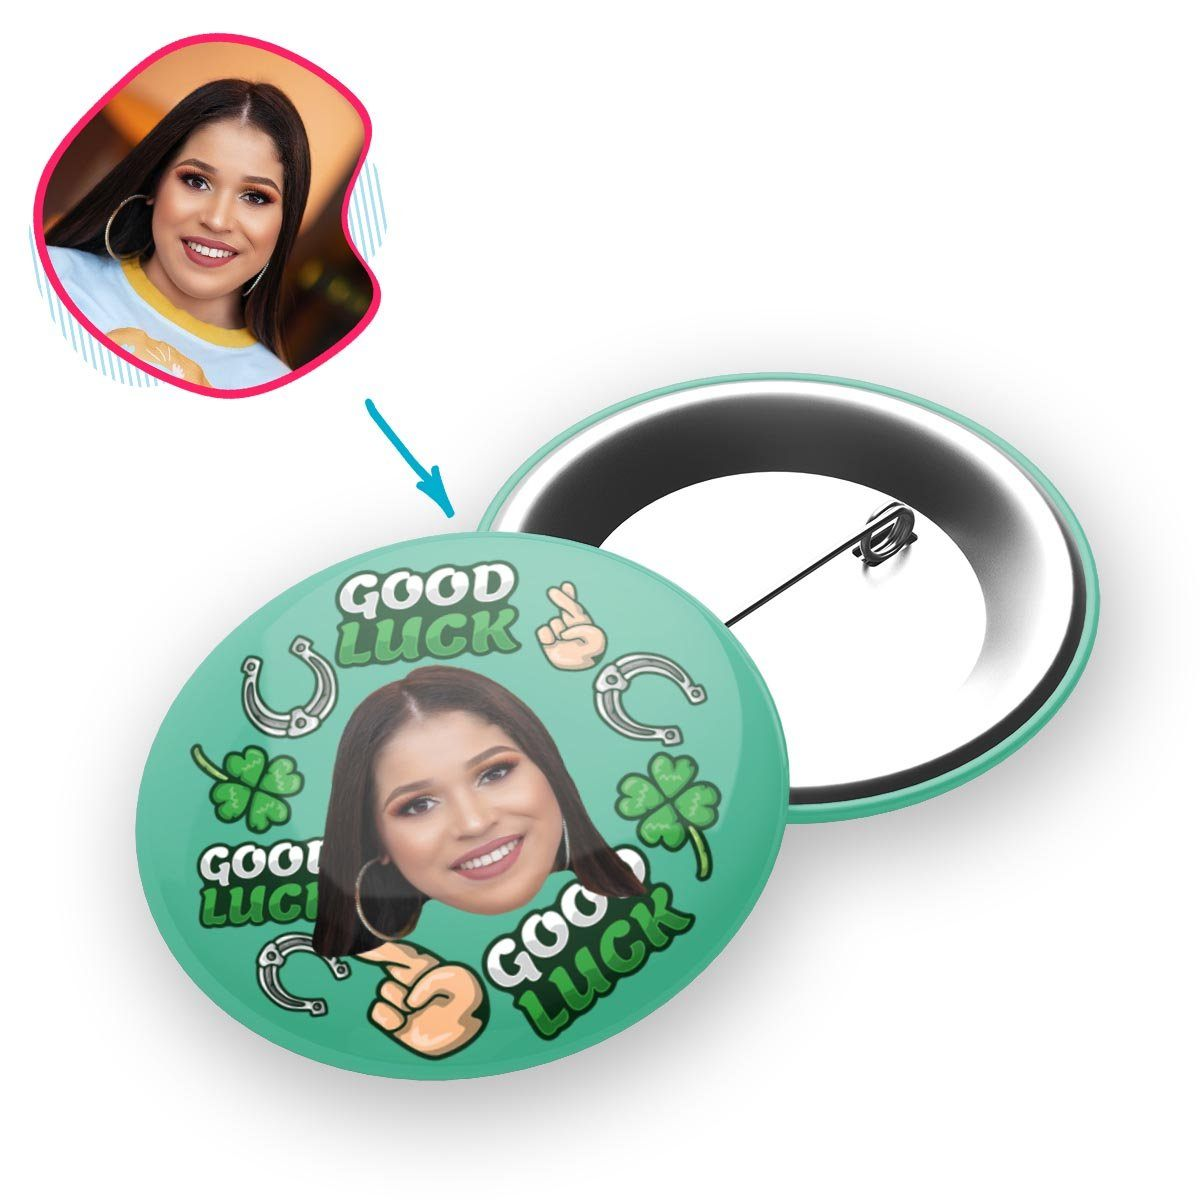 Mint Good Luck personalized pin with photo of face printed on it